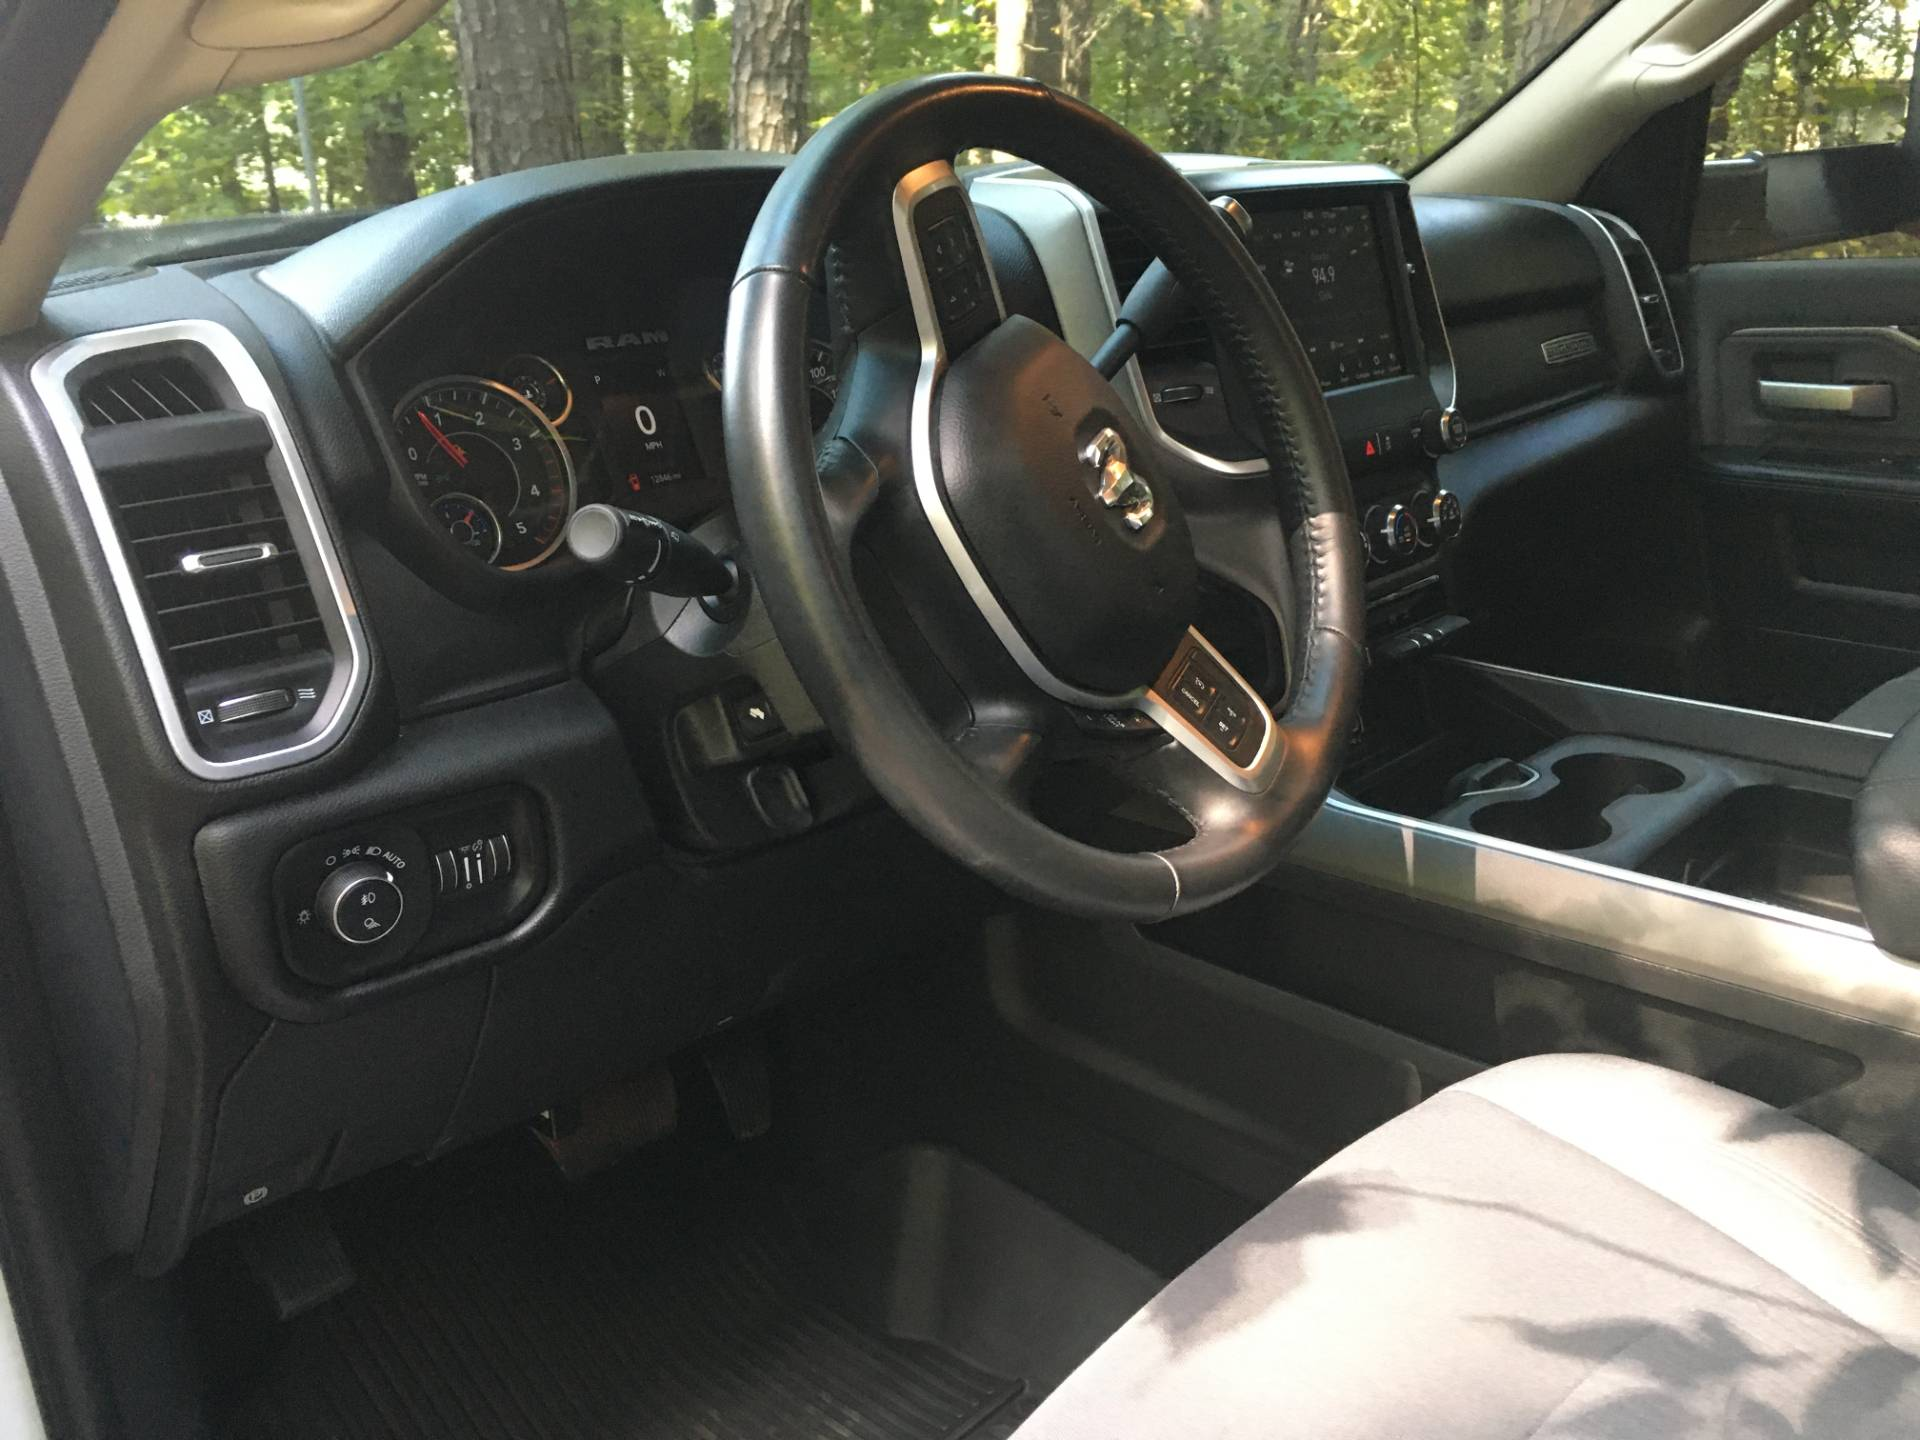 2019 DODGE RAM 3500 BIGHORN 4X4 in Woodstock, Georgia - Photo 15